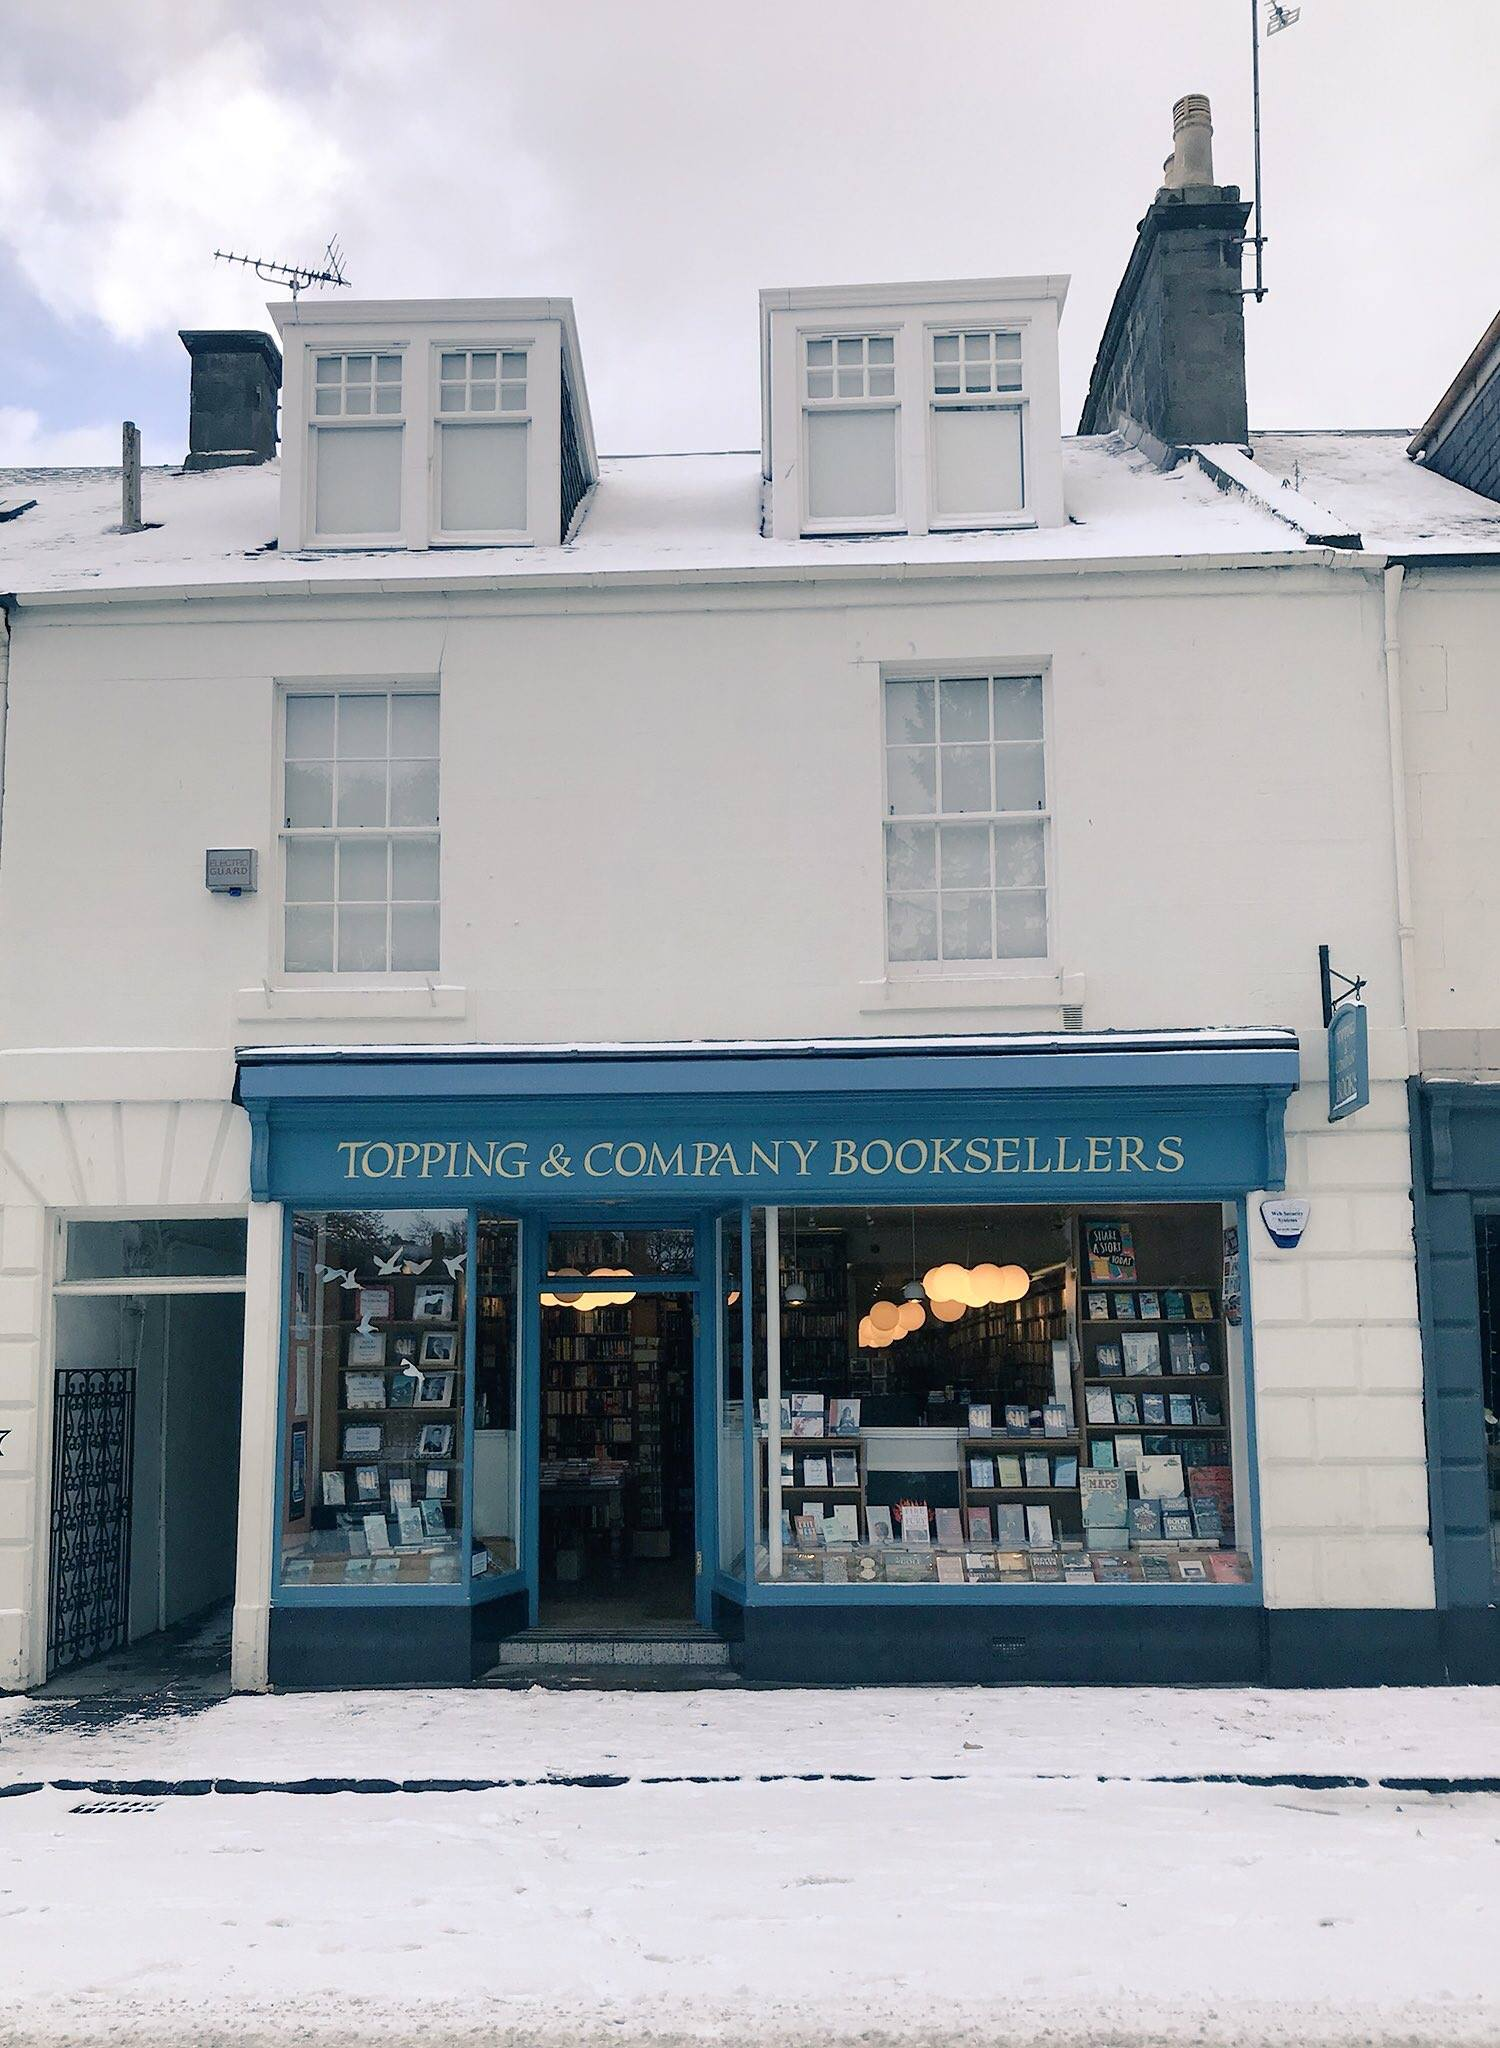 Topping & Co. Booksellers